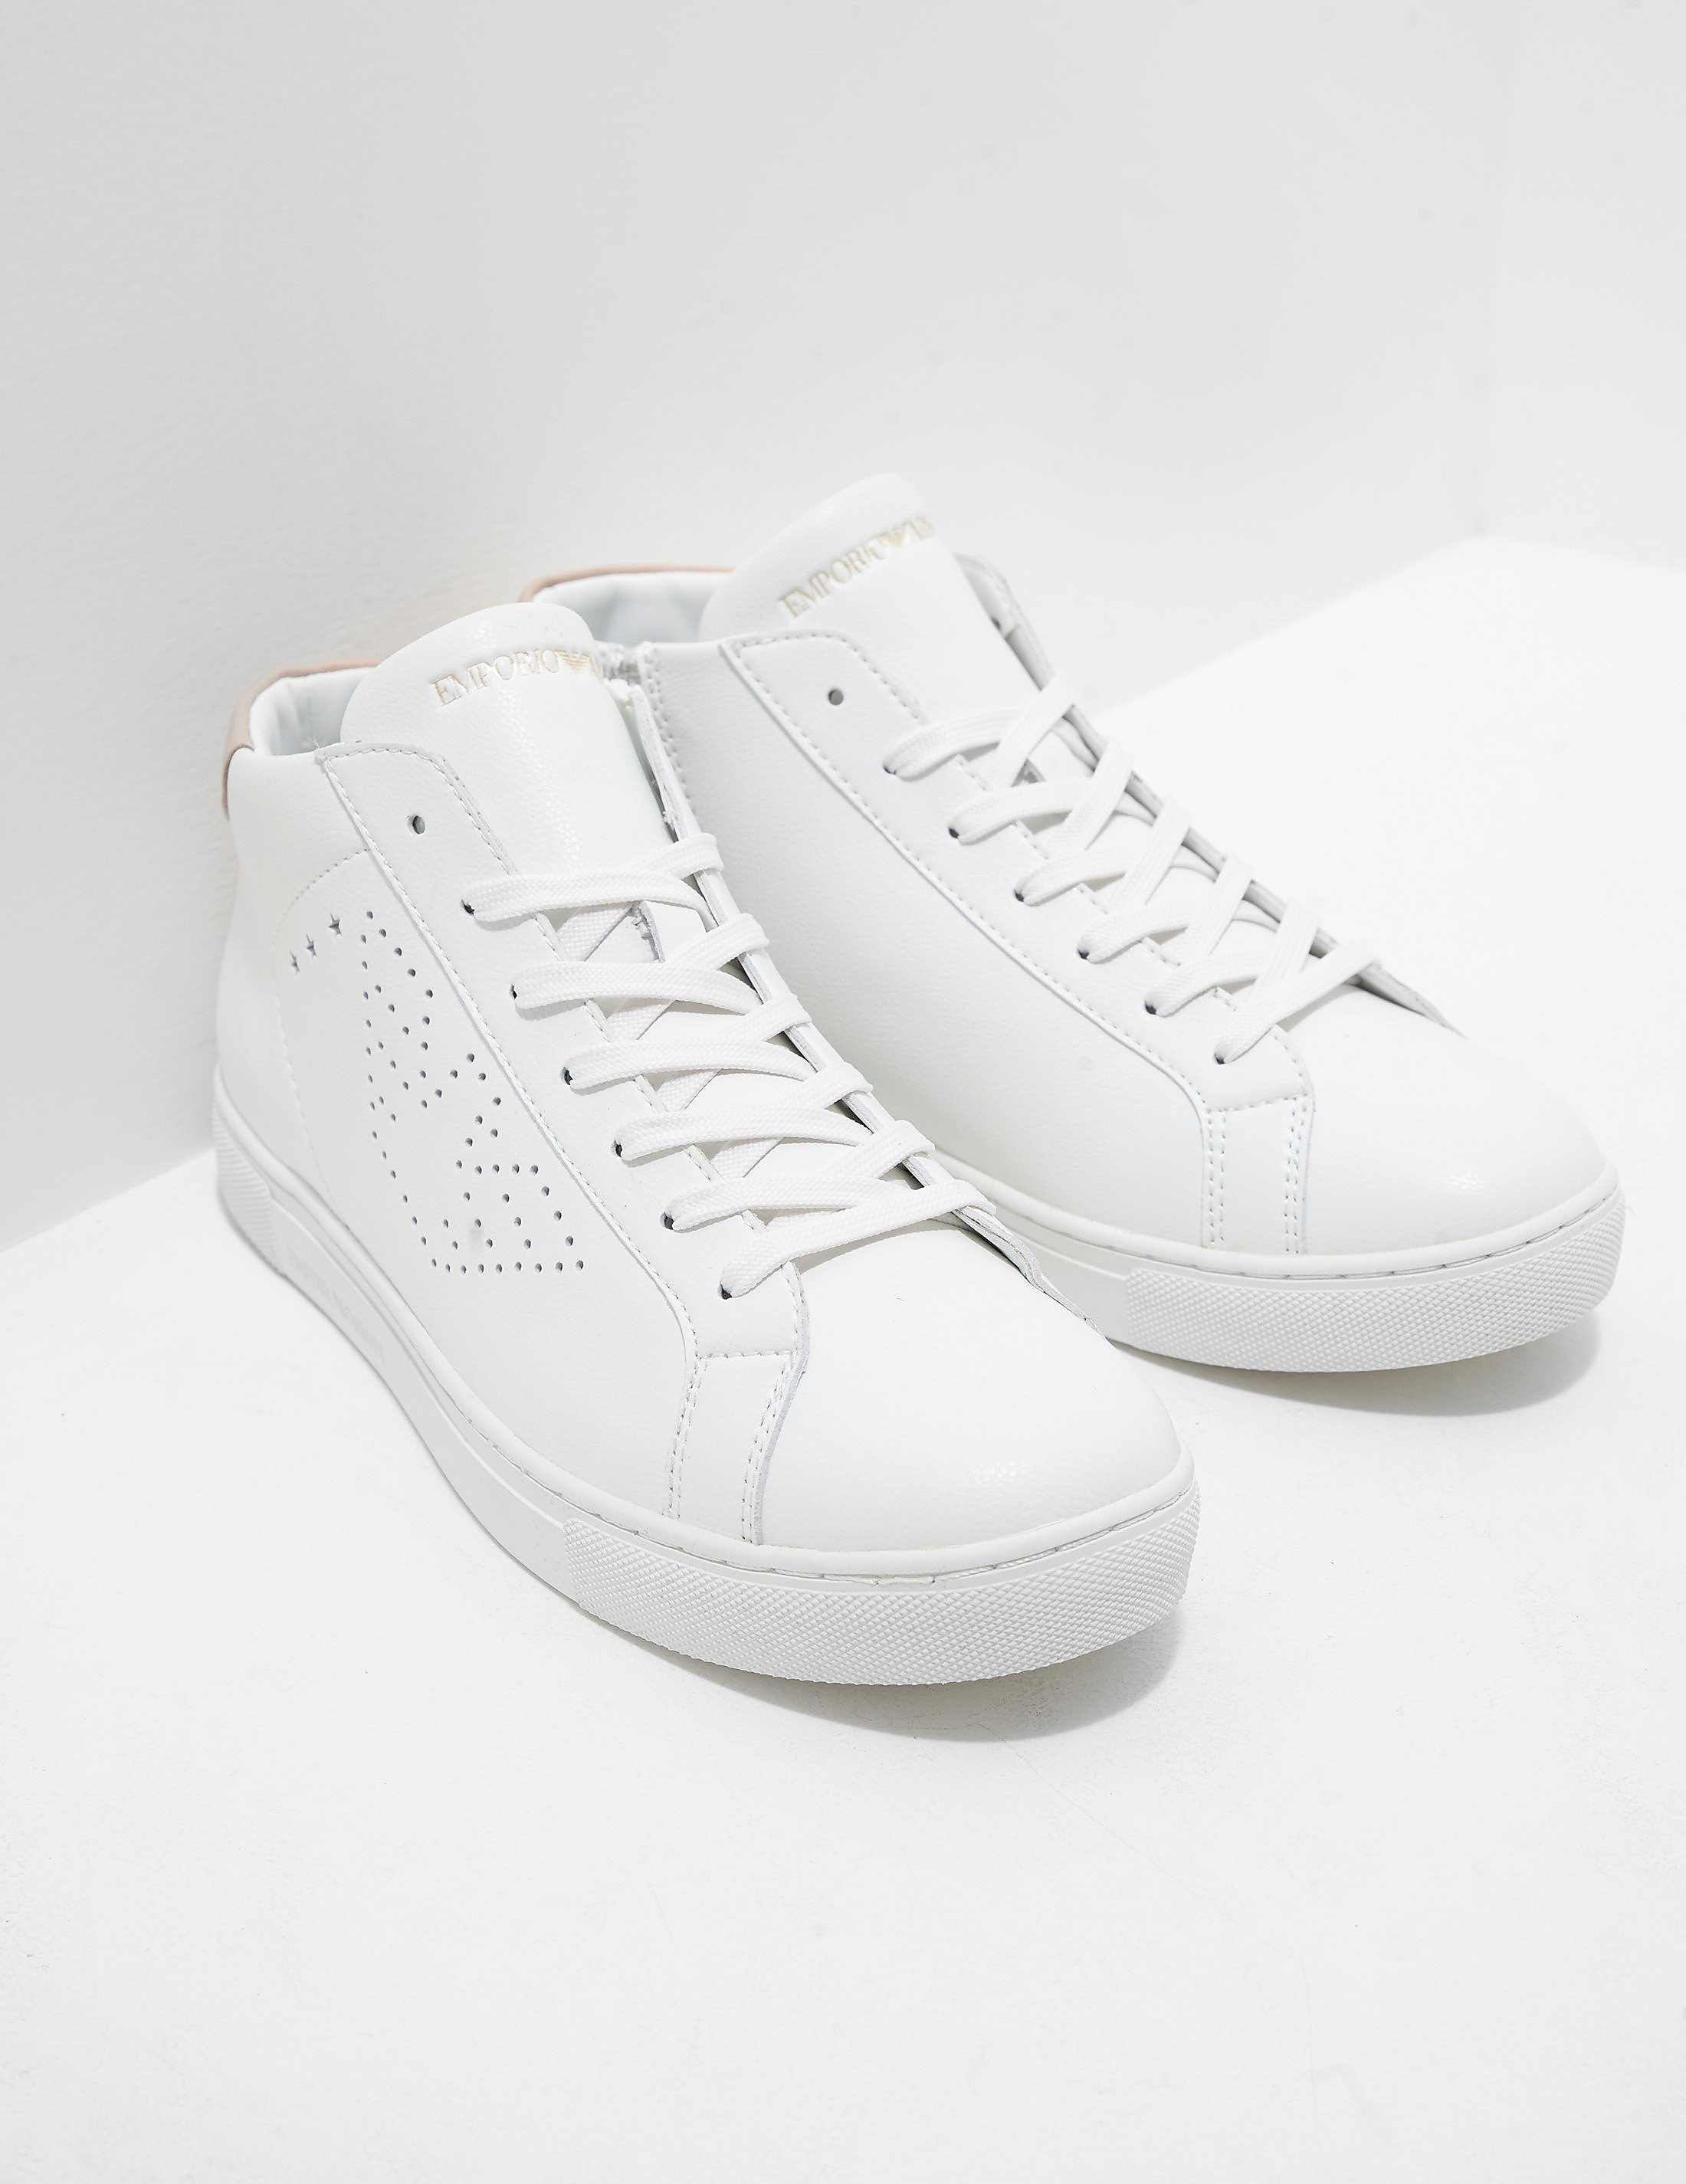 Emporio Armani Shara Hightop Sneakers